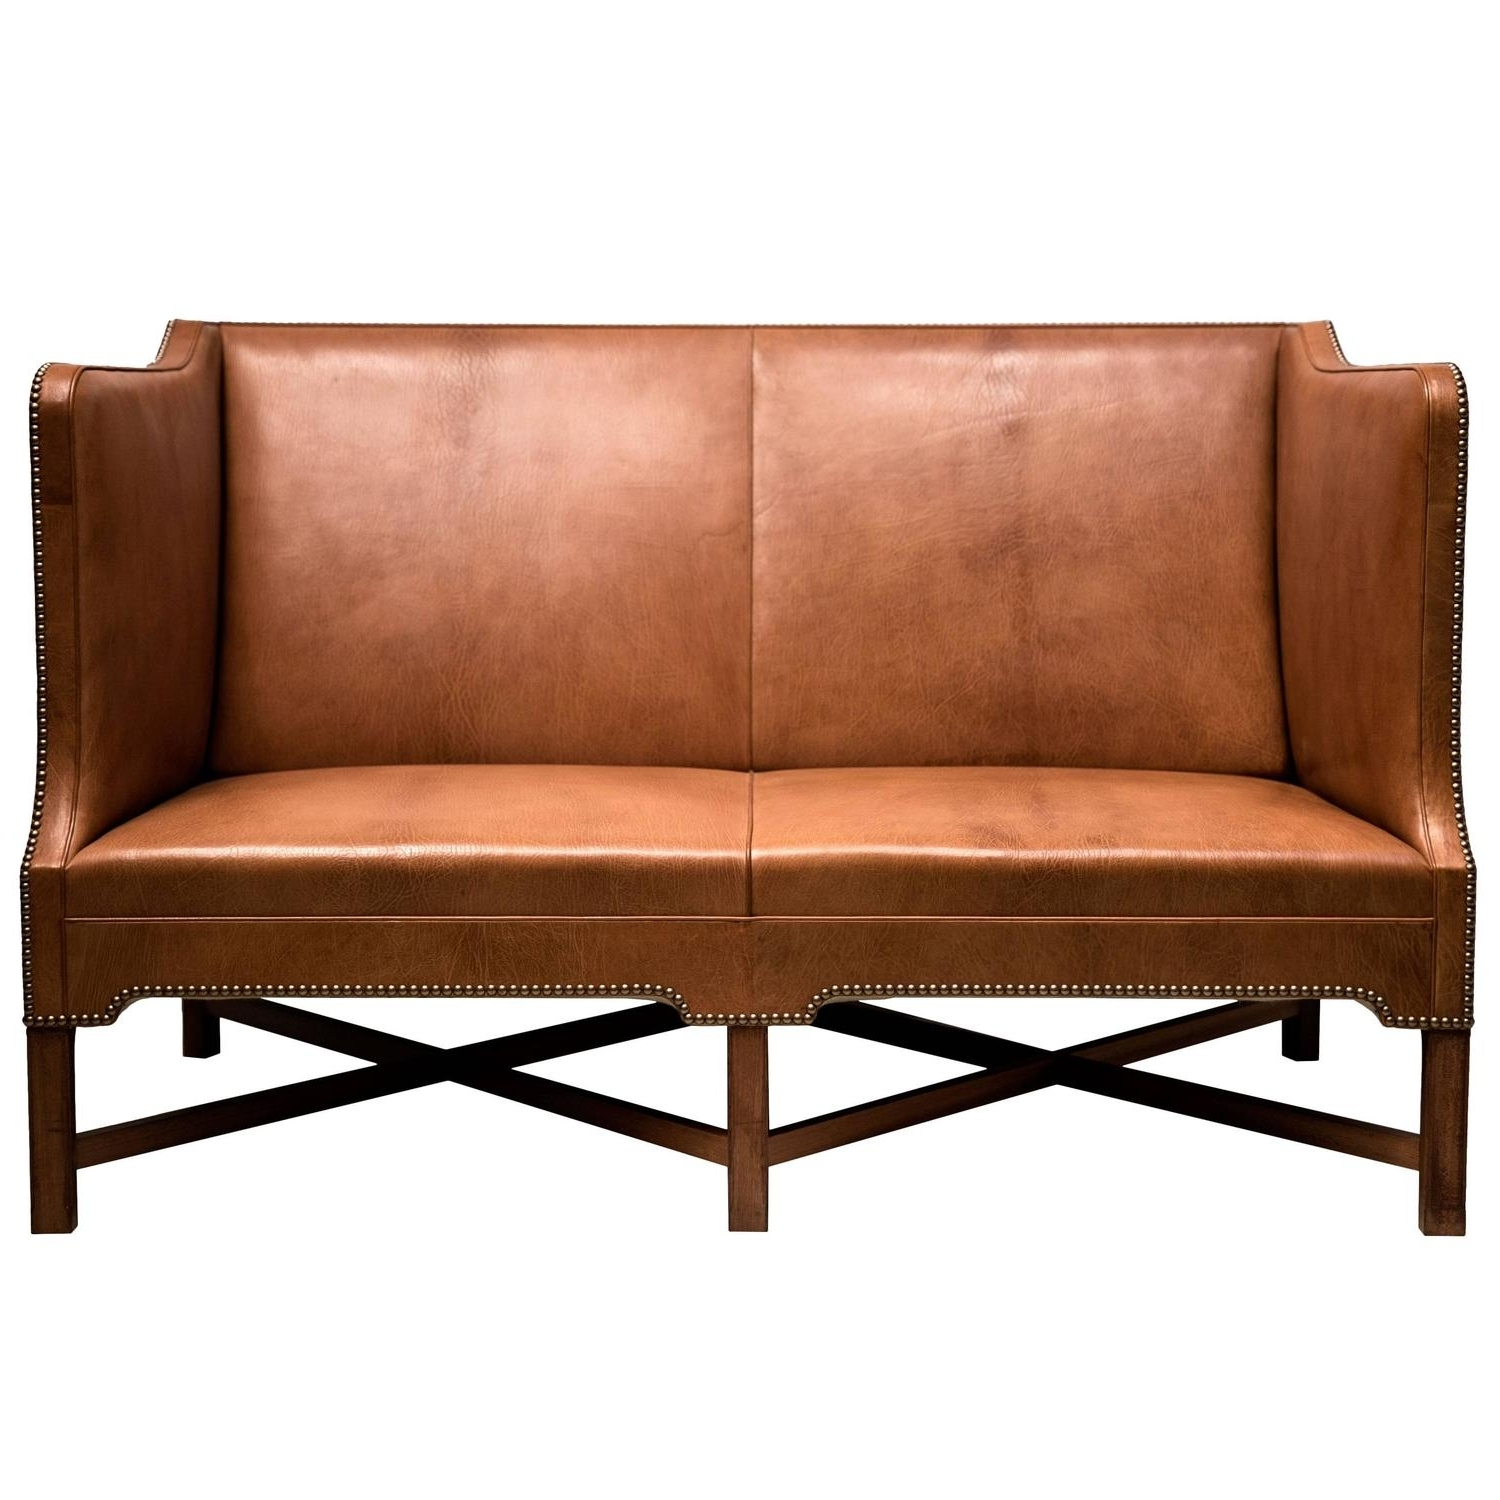 Most Popular 1930s Sofas – 122 For Sale At 1stdibs With Regard To 1930s Sofas (View 6 of 20)